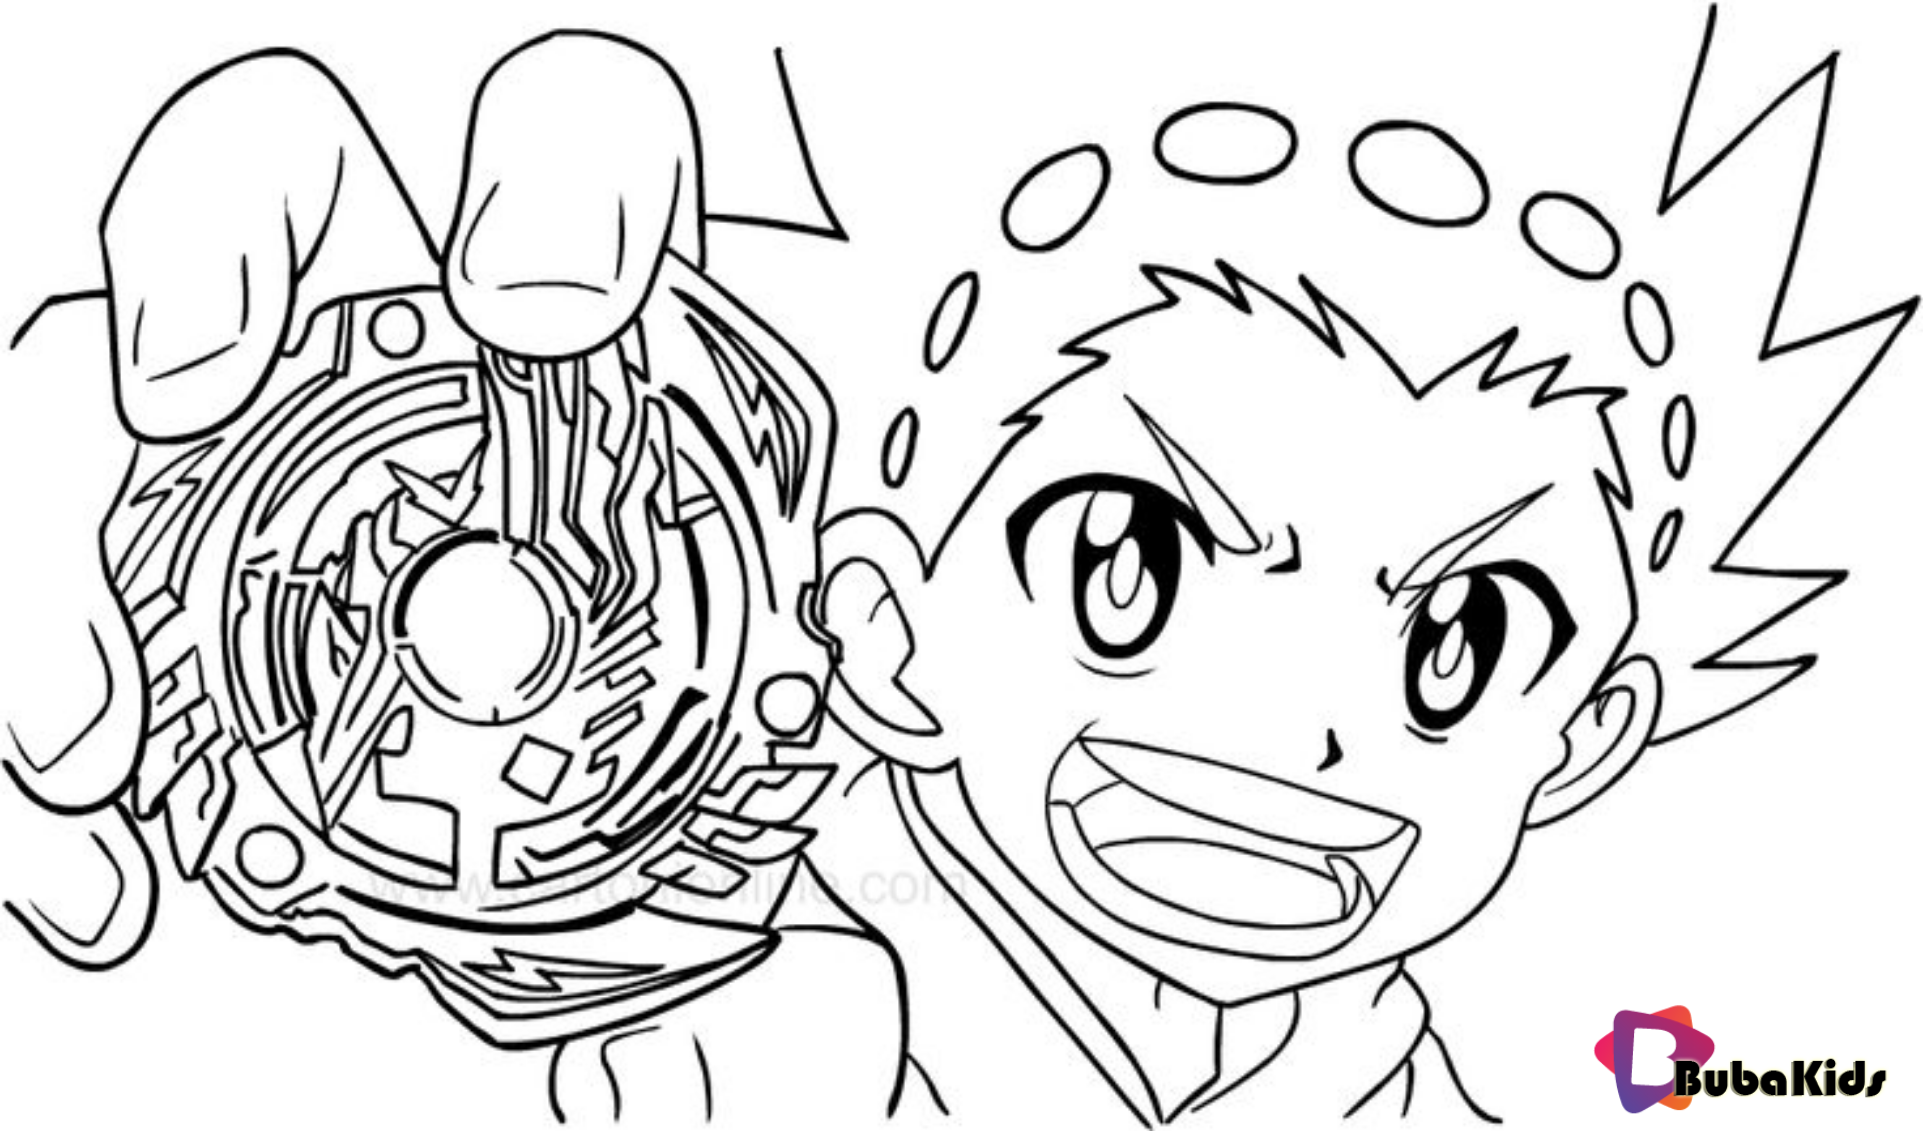 Beyblade Burst coloring page Beyblade, bubakids, Burst, coloring